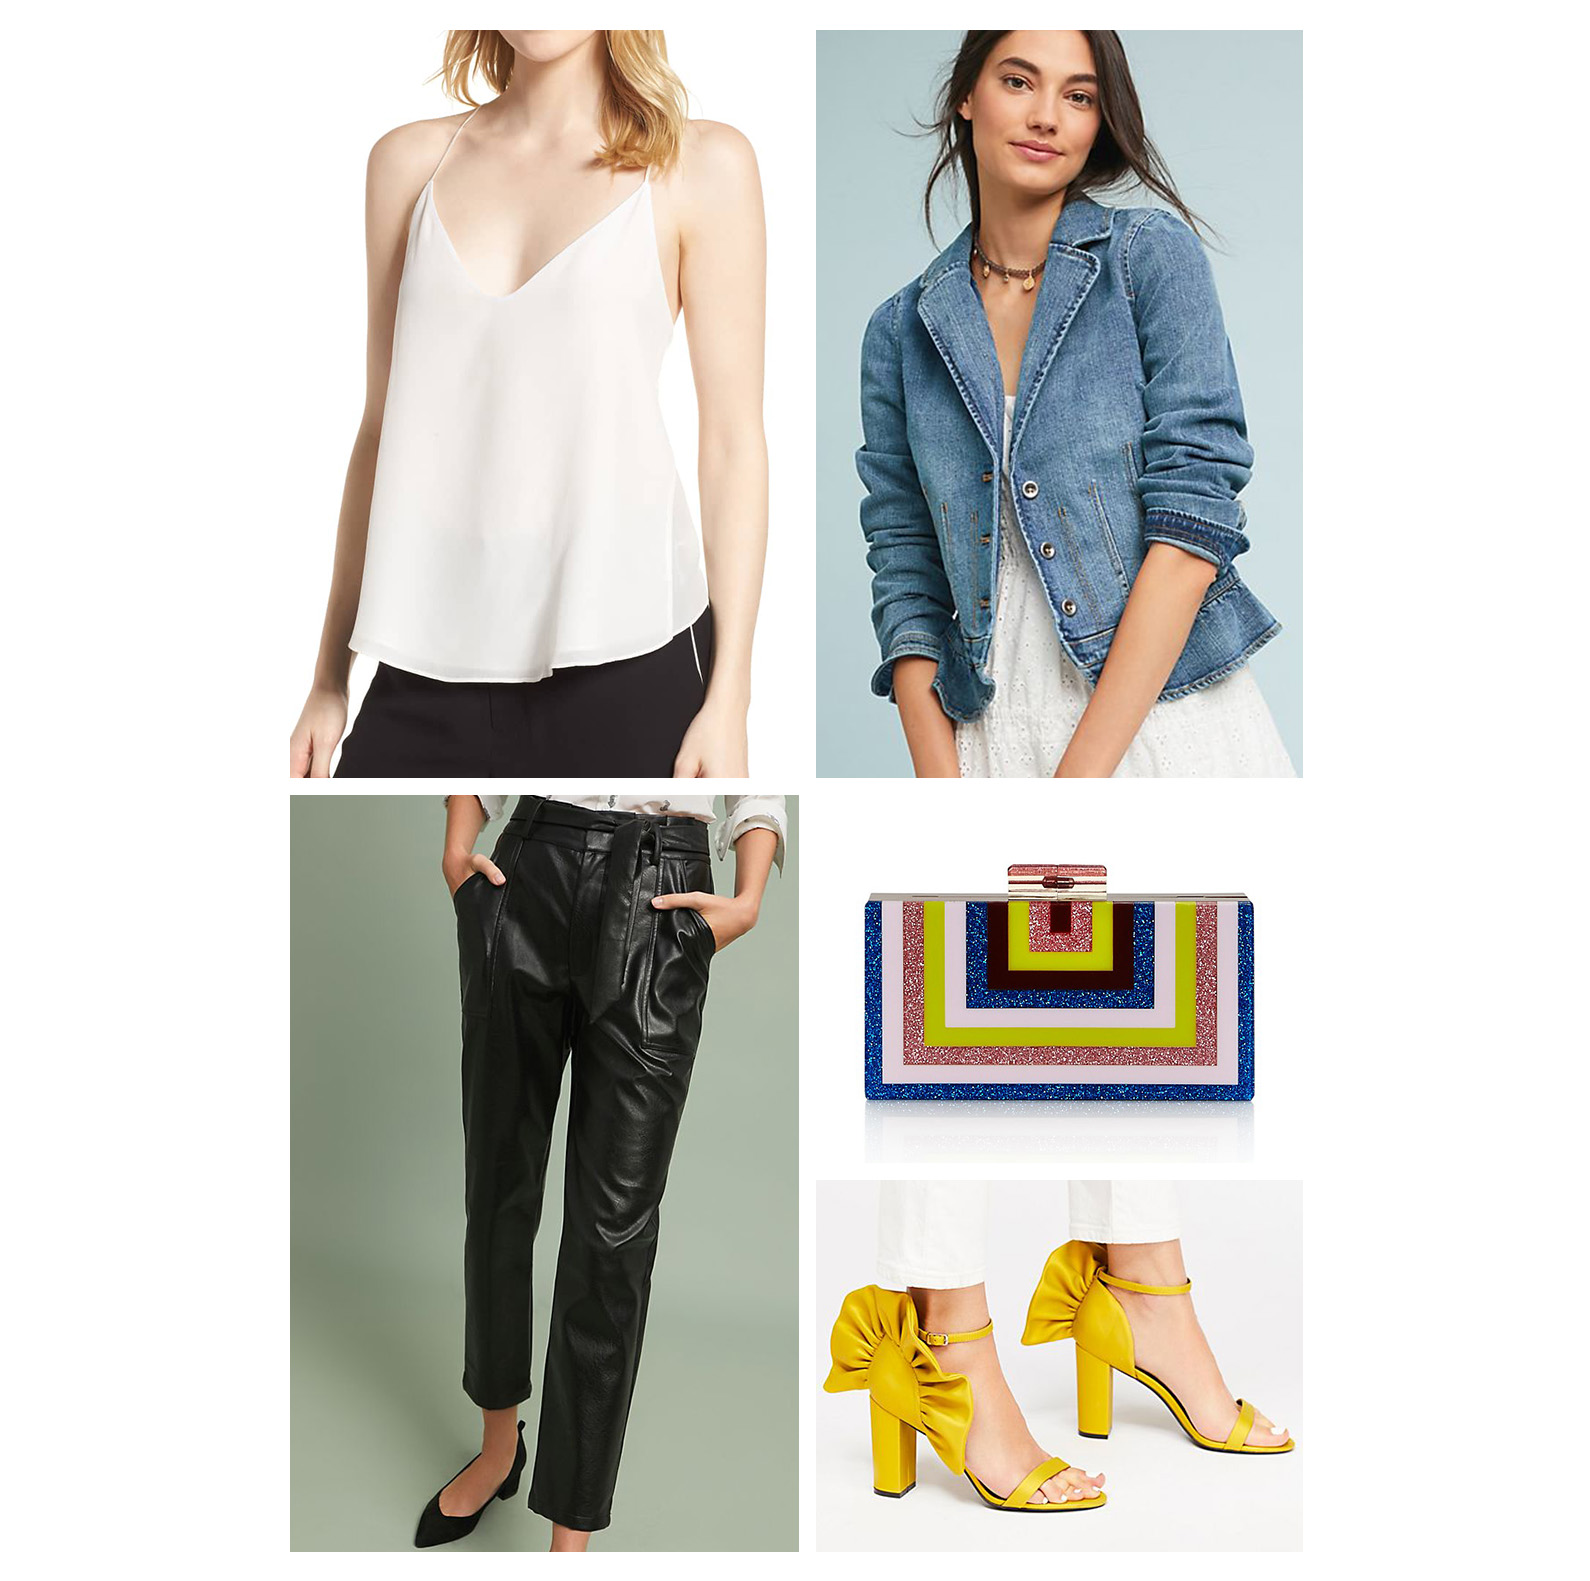 fall-autumn-outfit-dinner-2018-fashion-ideas-black-jogger-pants-leather-white-camisole-blue-denim-blazer-stripe-clutch-yellow-sandal-heels-night-out.jpg